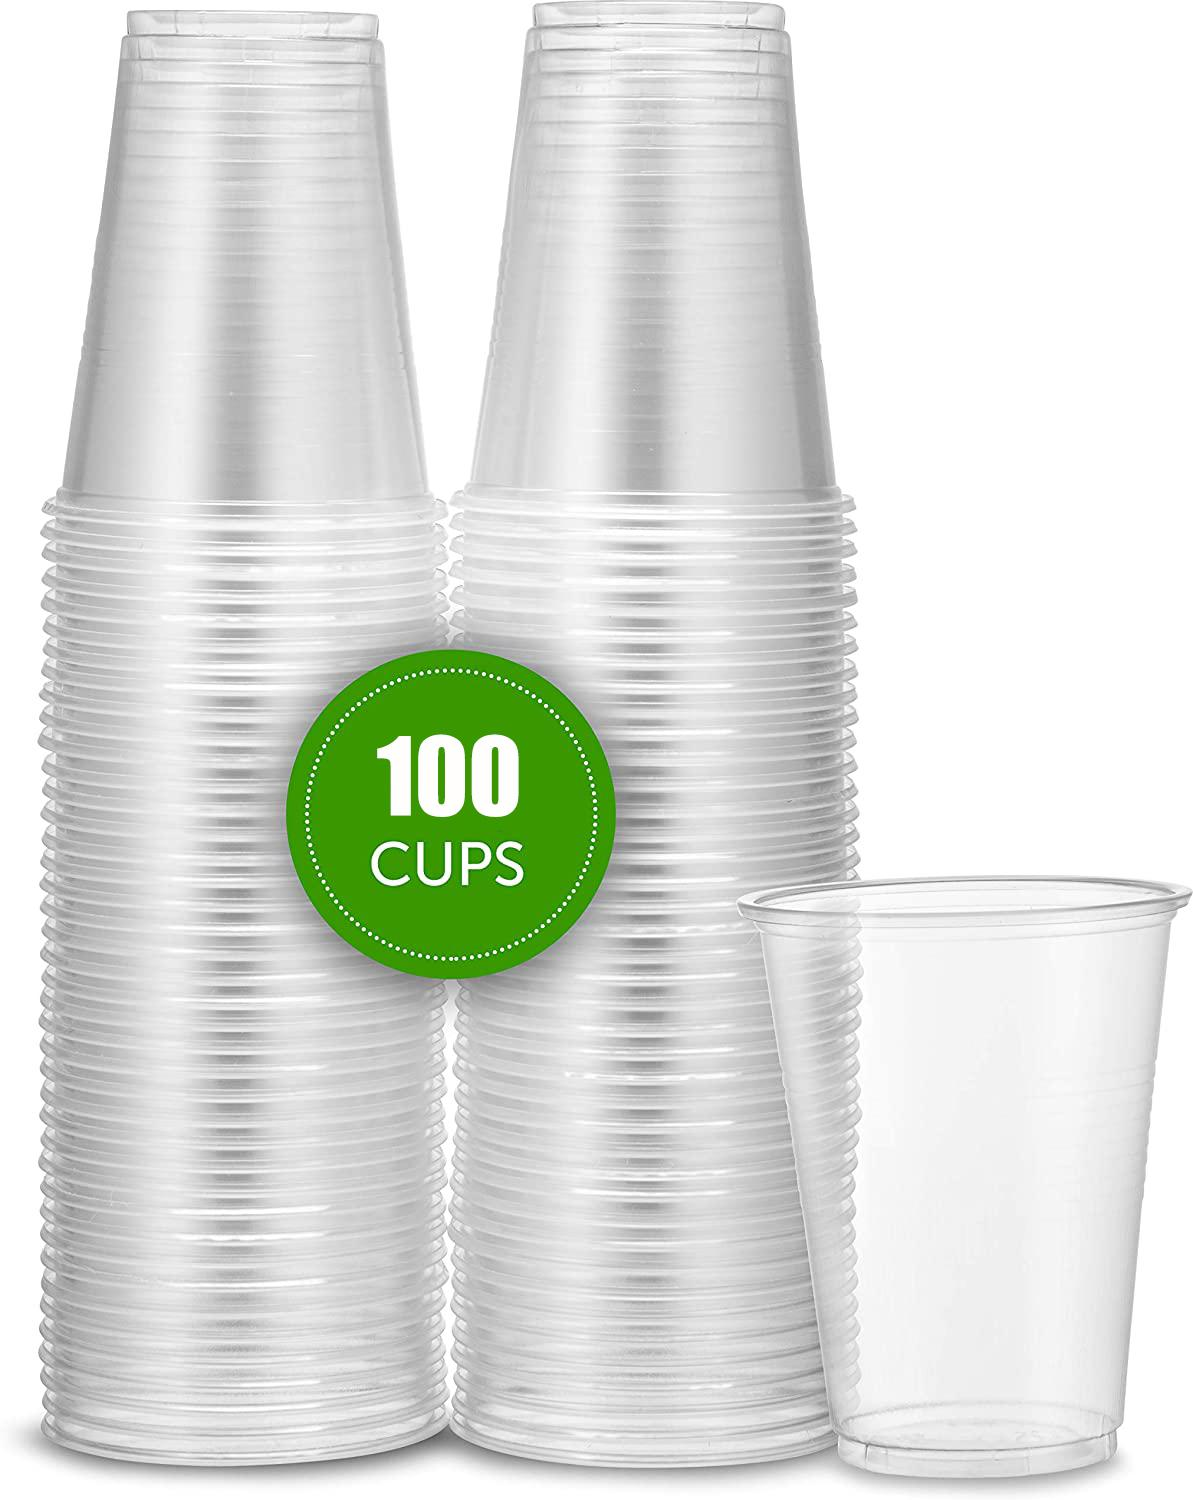 9 Oz Plastic Disposable Clear Durable Drinking Cups(100 Count), Clear Disposable Plastic Tea Cup Coffee Cups